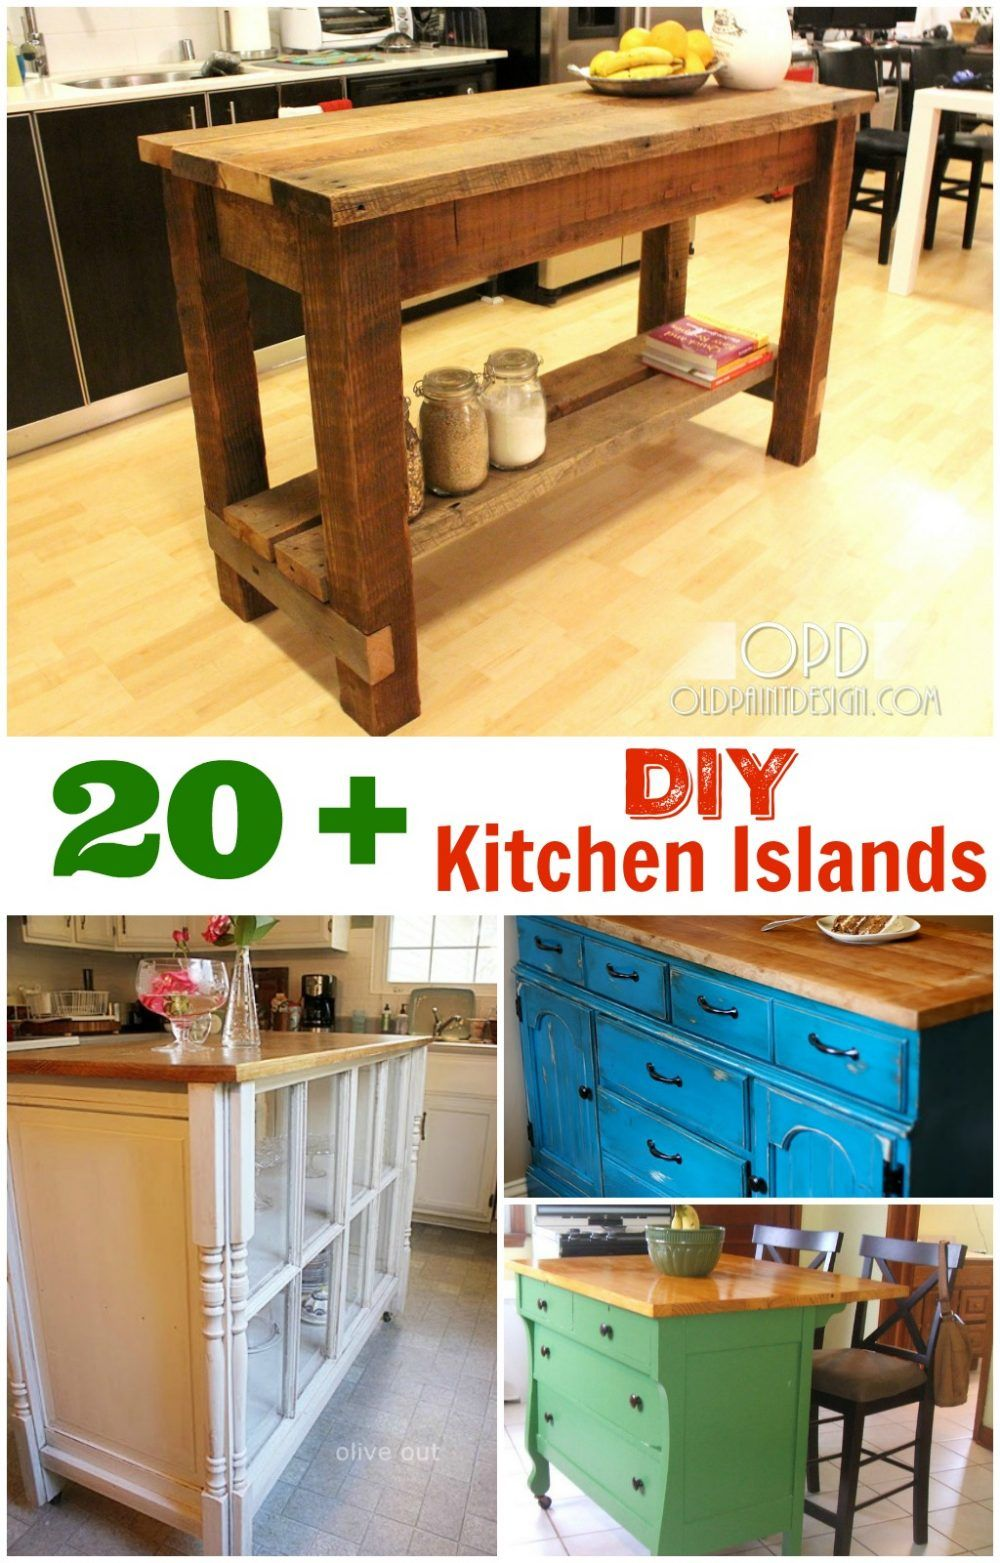 DIY Kitchen Islands. These kitchen island DIY projects are